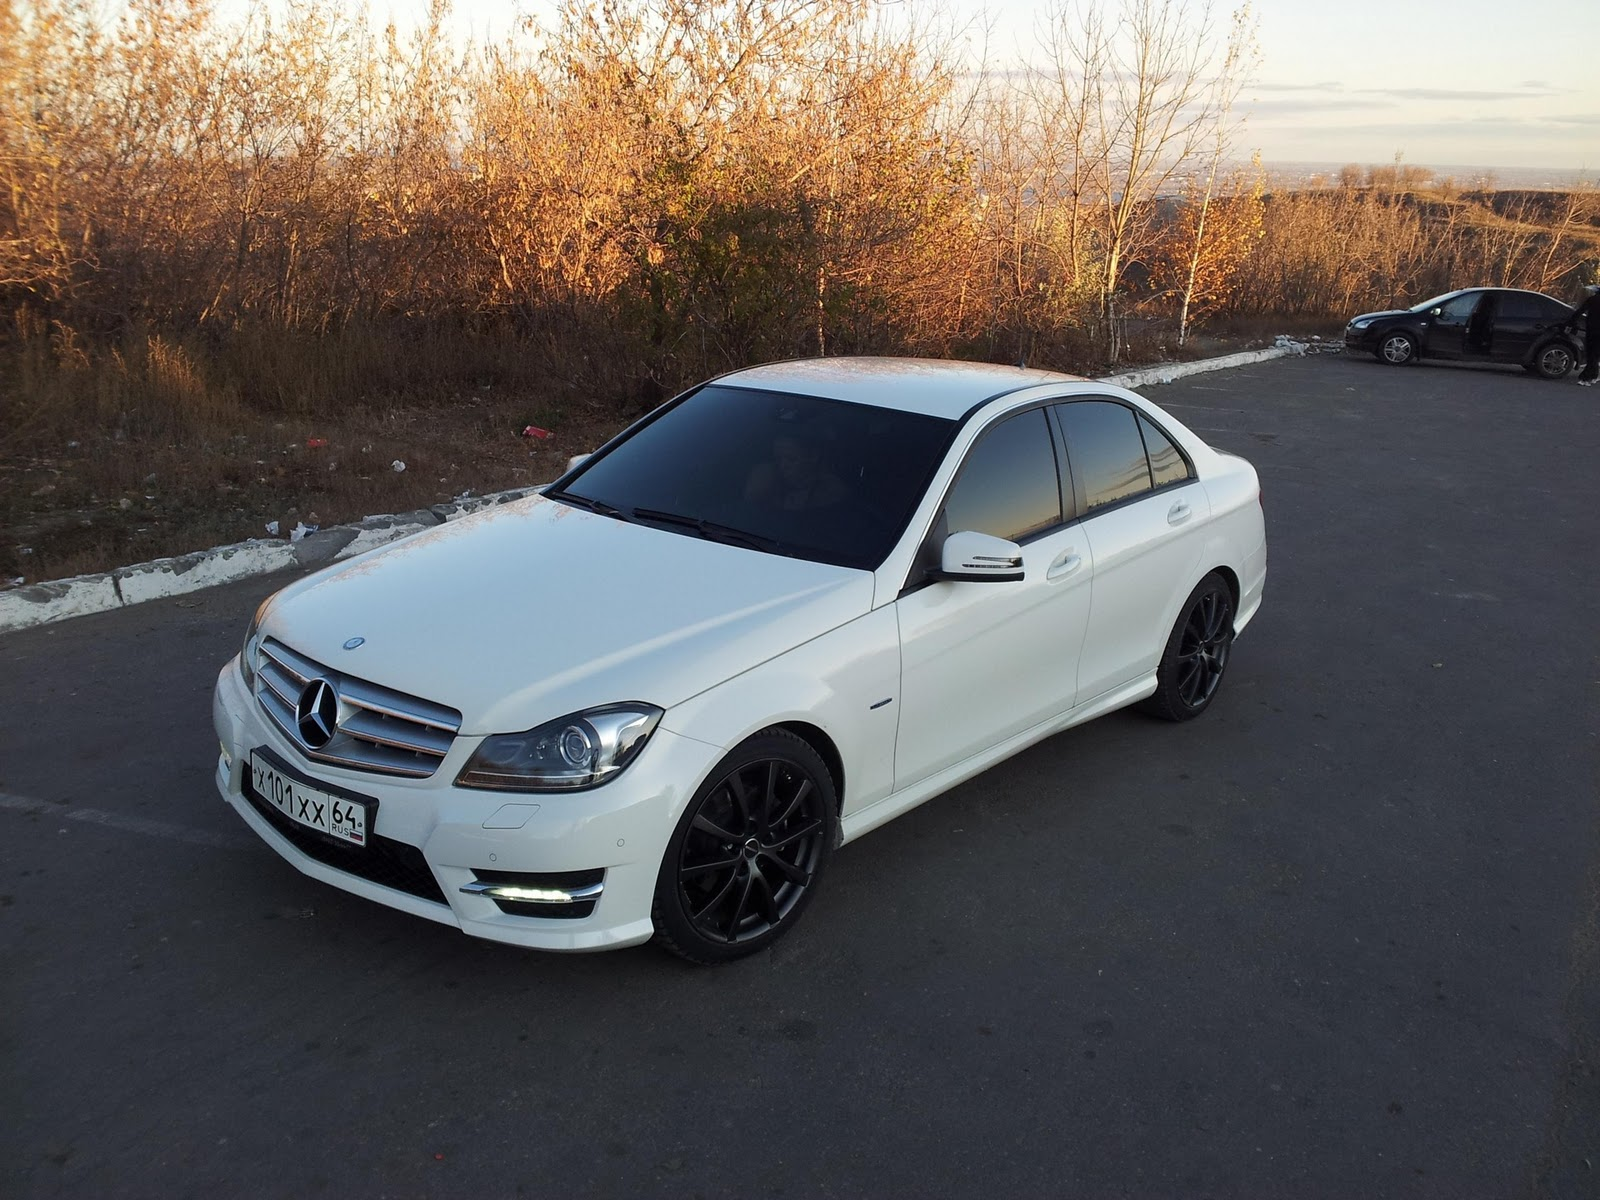 Mercedes benz c class w204 on r18 borbet wheels benztuning for Rims for mercedes benz c300